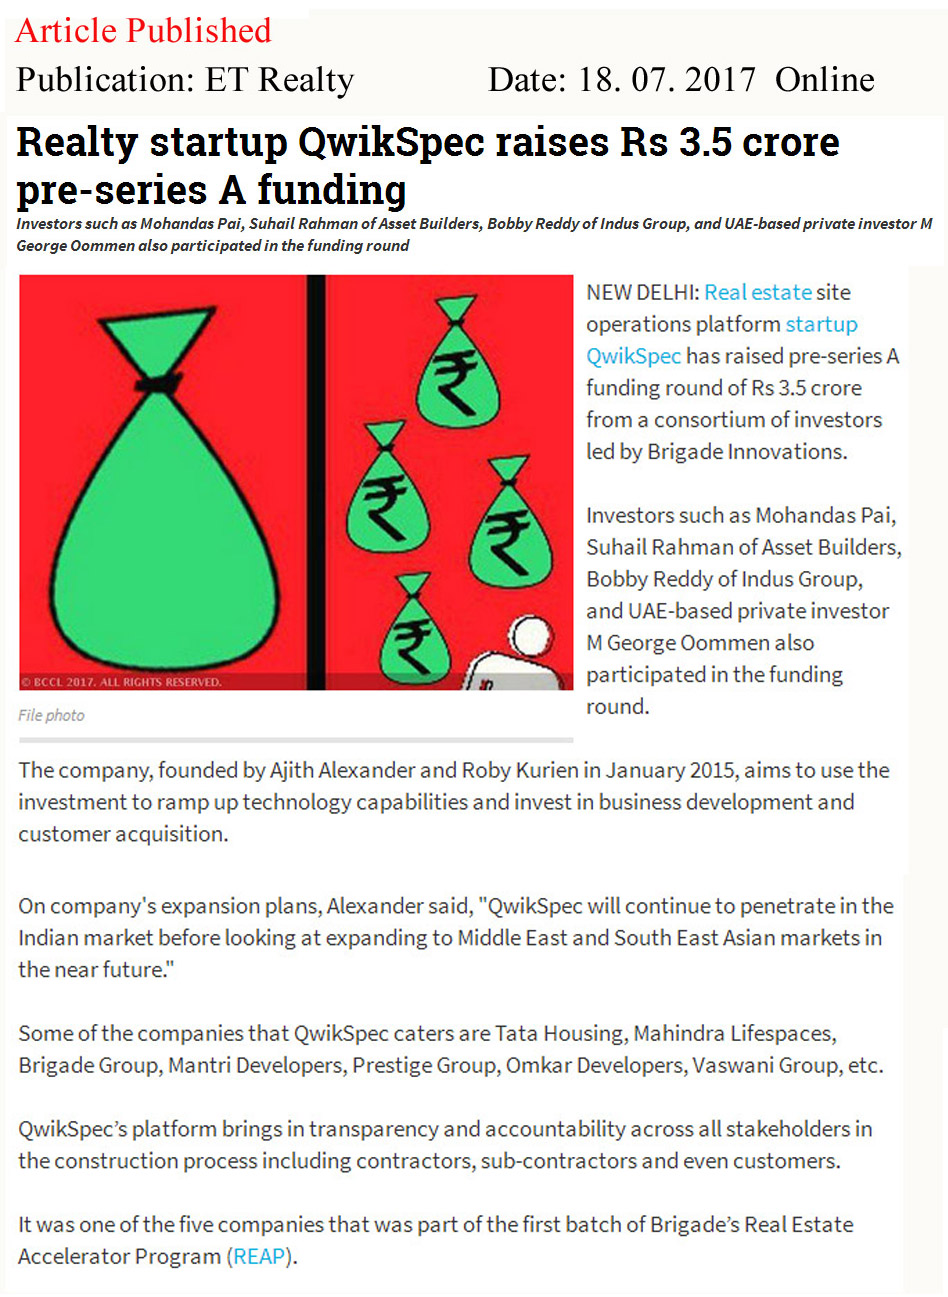 Realty Startups QwikSpec raises Rs. 3.5 crores in Pre-Series A funding—ET Realty-Qwickspec